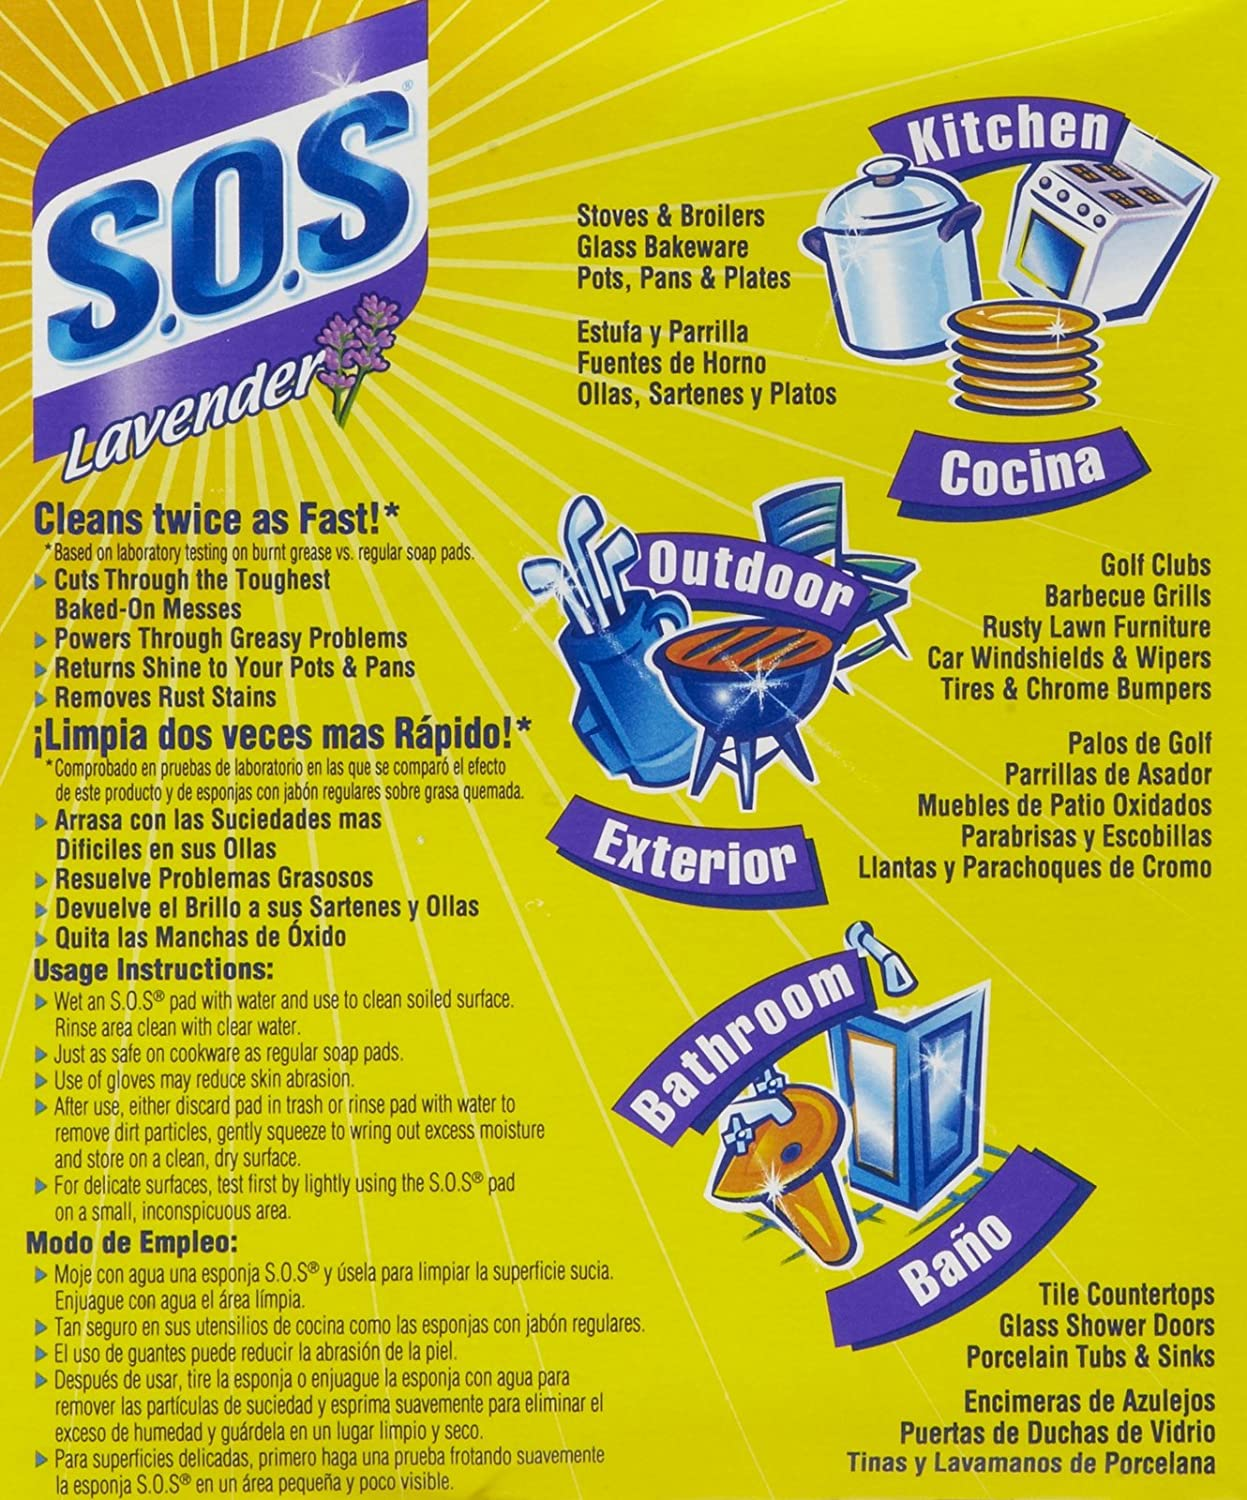 Amazon.com: S.O.S Steel Wool Soap Pads, Lavender - 10 ct - 3 pk: Health & Personal Care